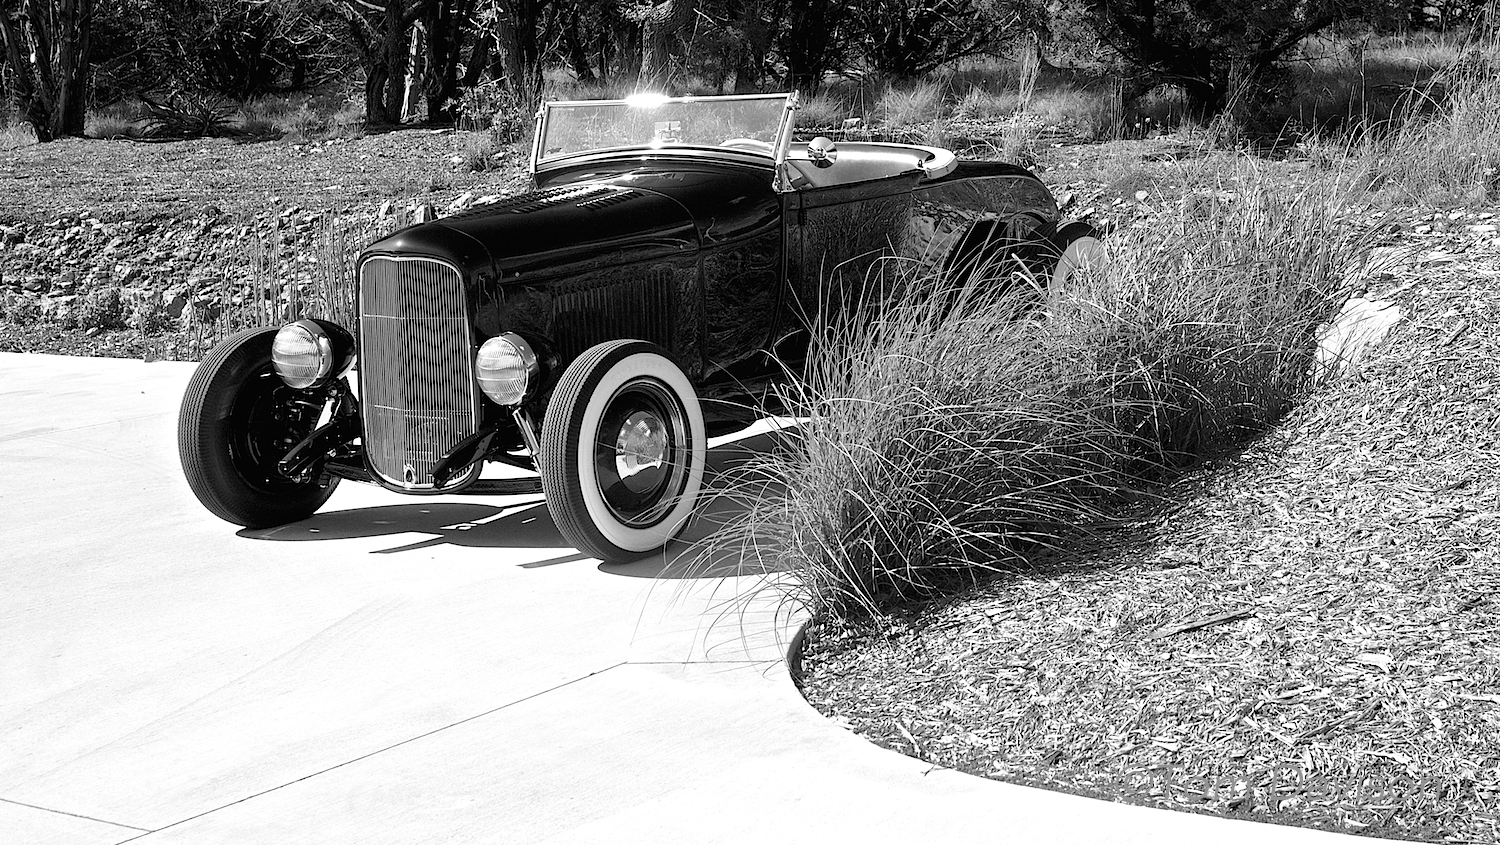 This is a 1931 Ford roadster.